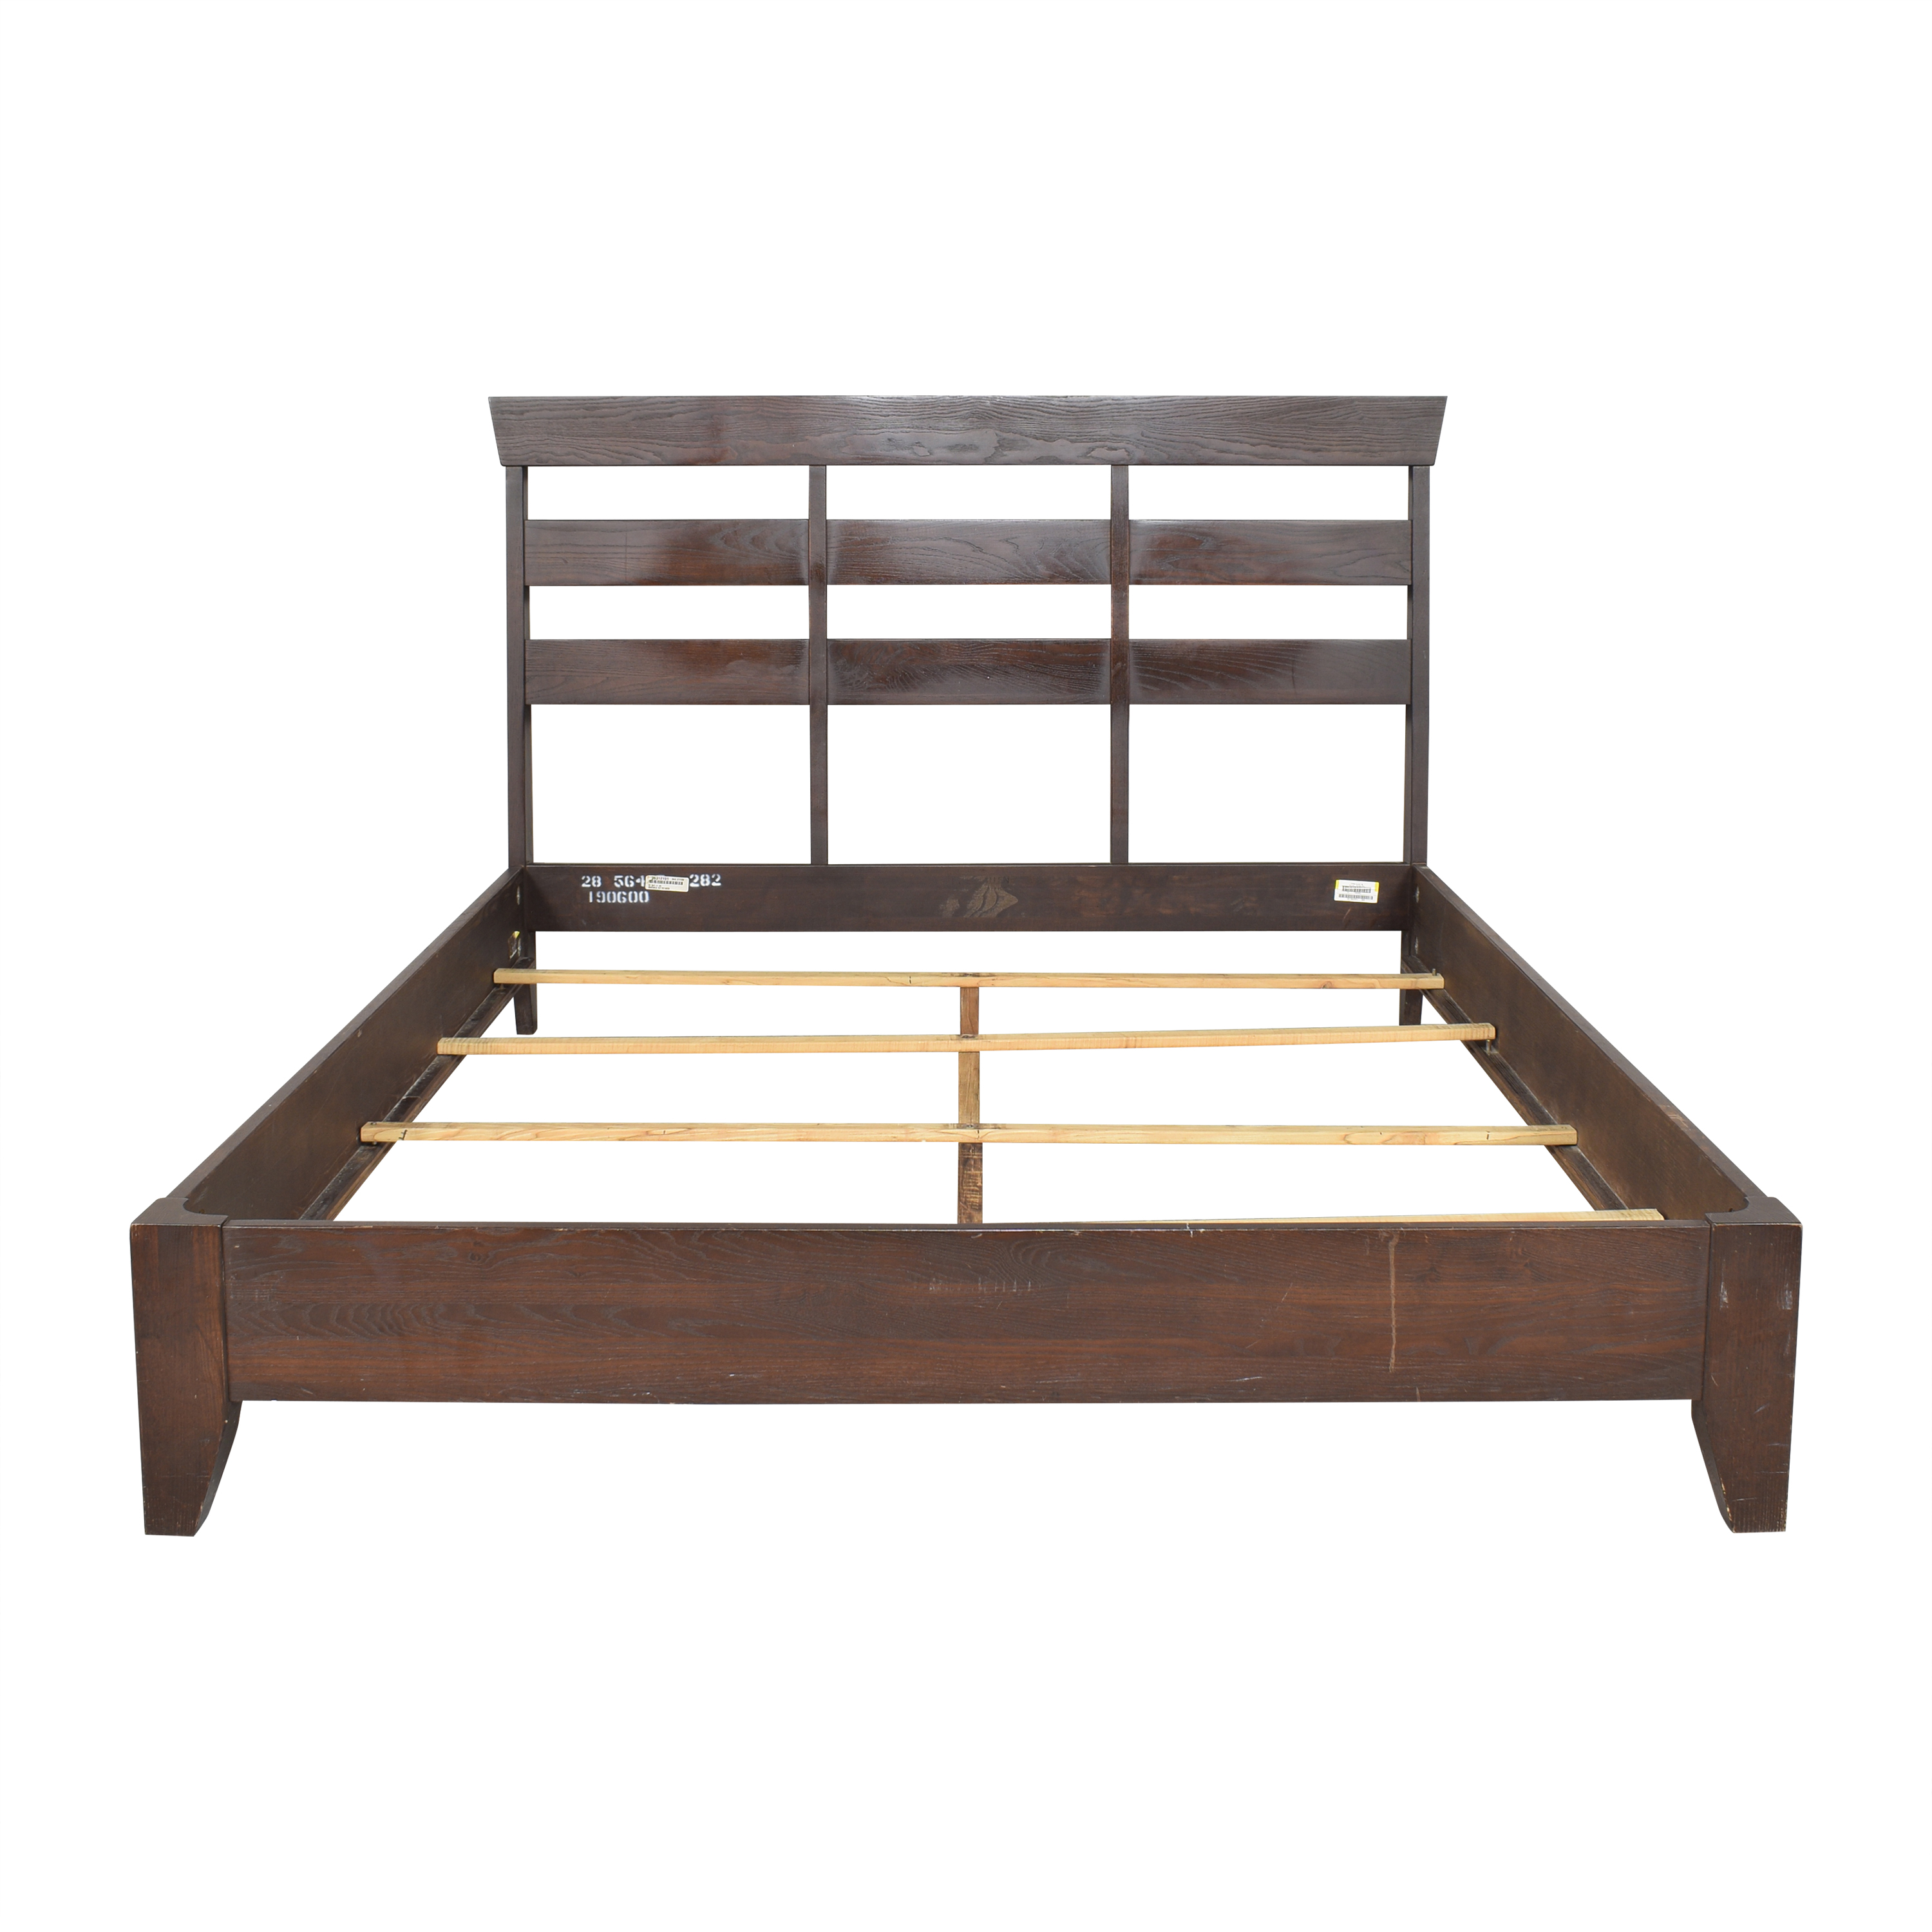 Ethan Allen Ethan Allen Lotus Queen Bed dimensions